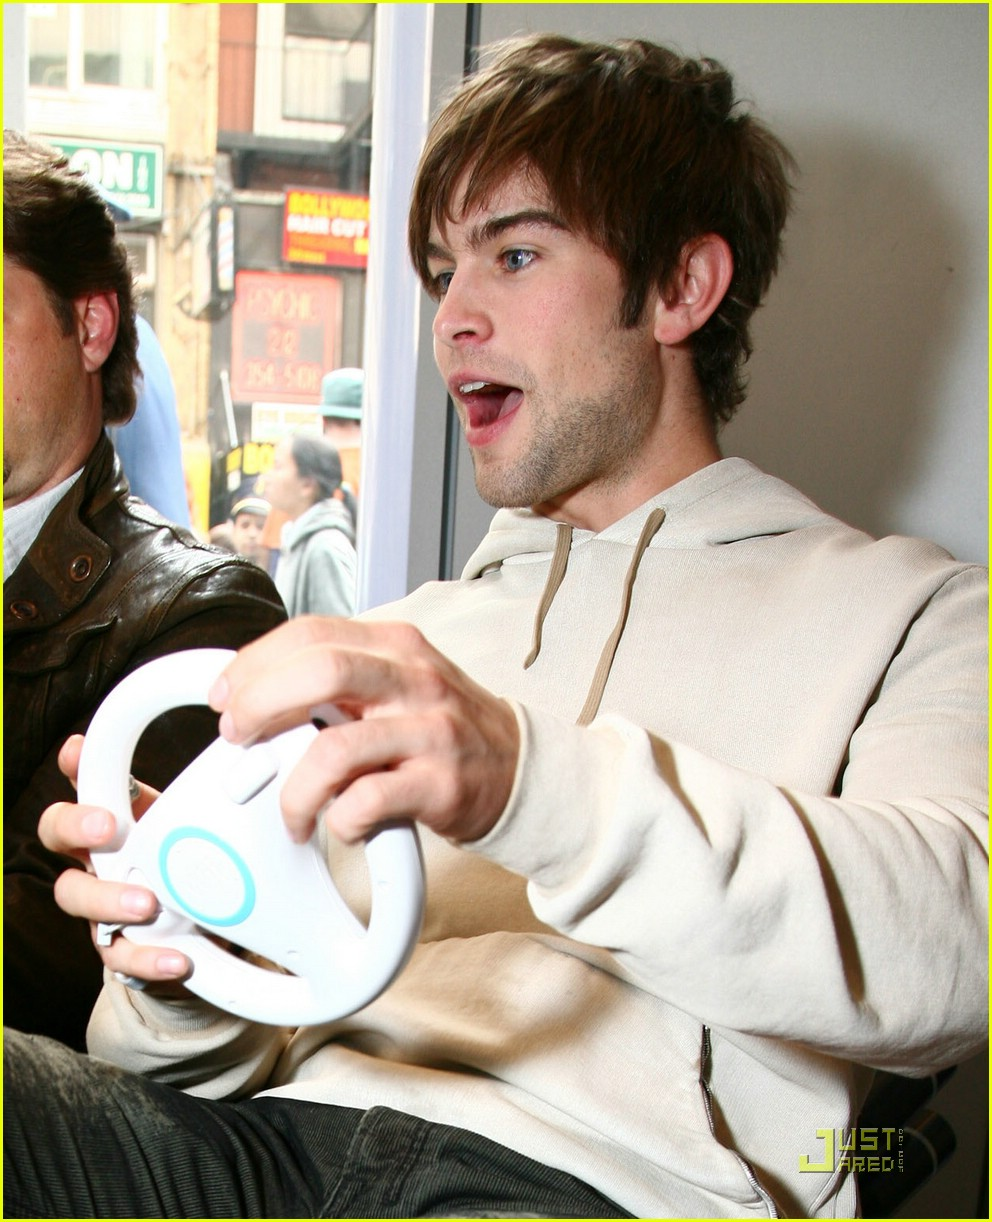 Cartoon pictures of chace crawford - Chace Crawford Takes The Wheel Photo 1092311 Chace Crawford Pictures Just Jared